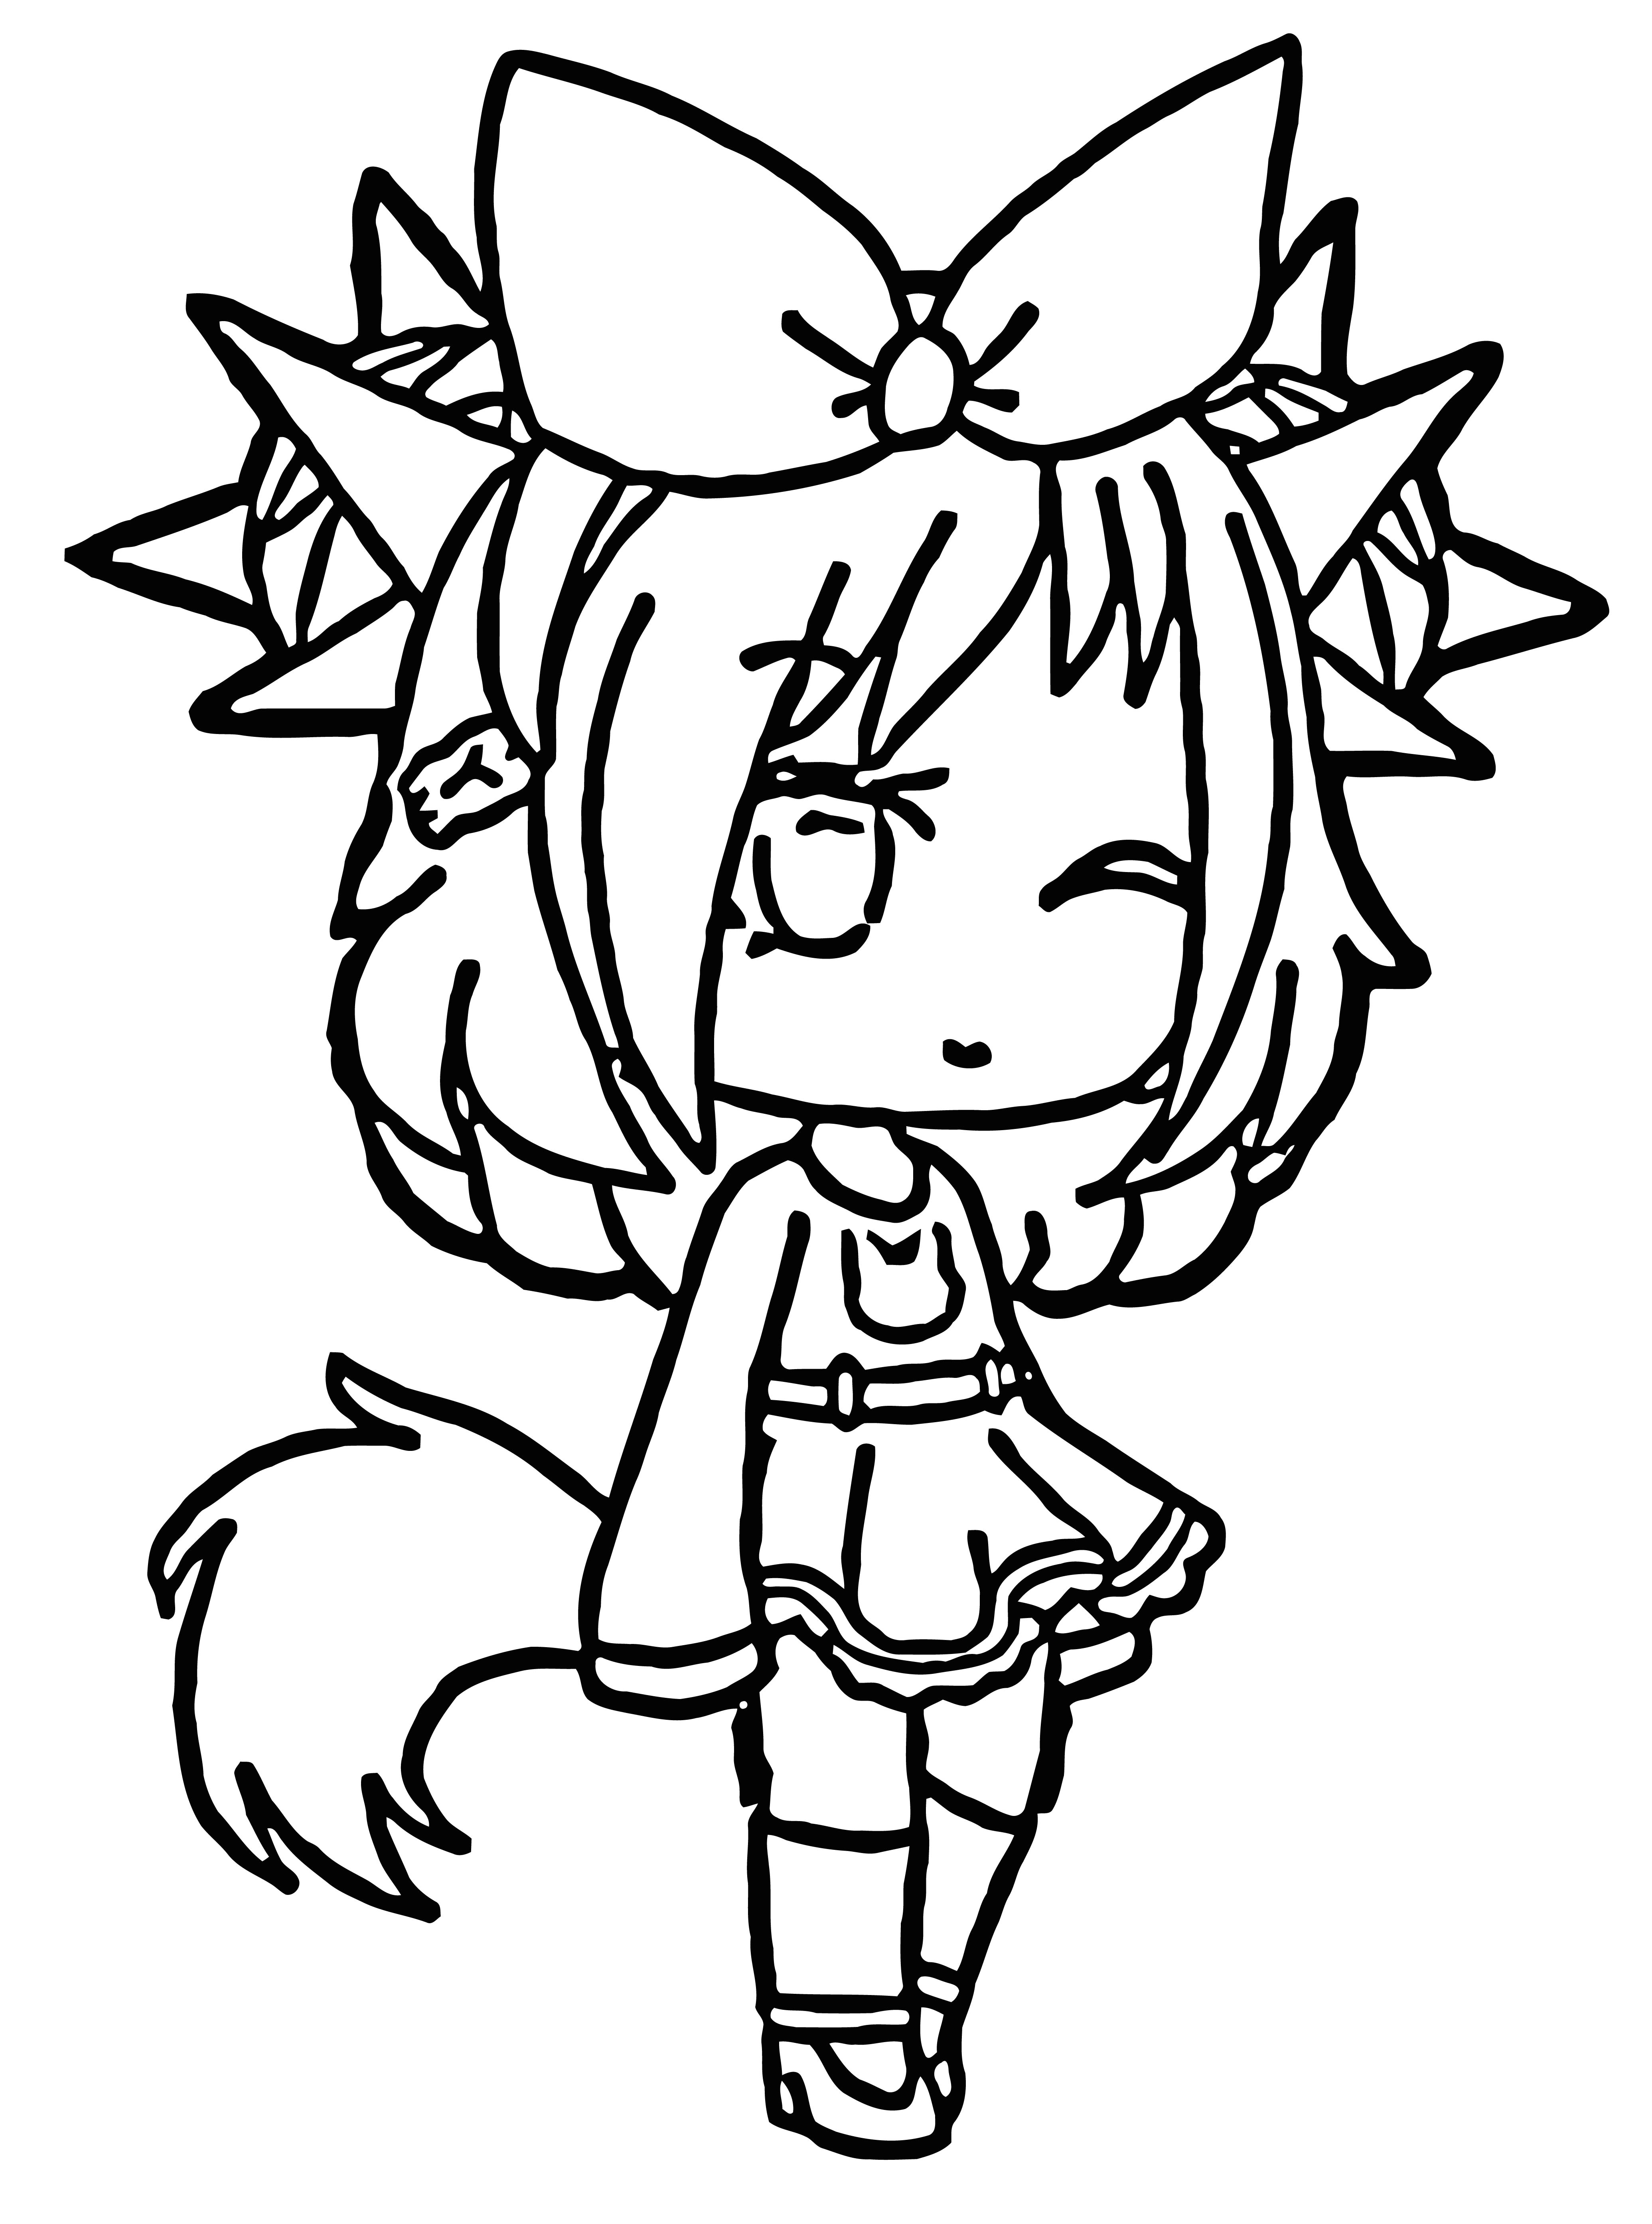 Gacha lifeclipart Black And White Coloring Page